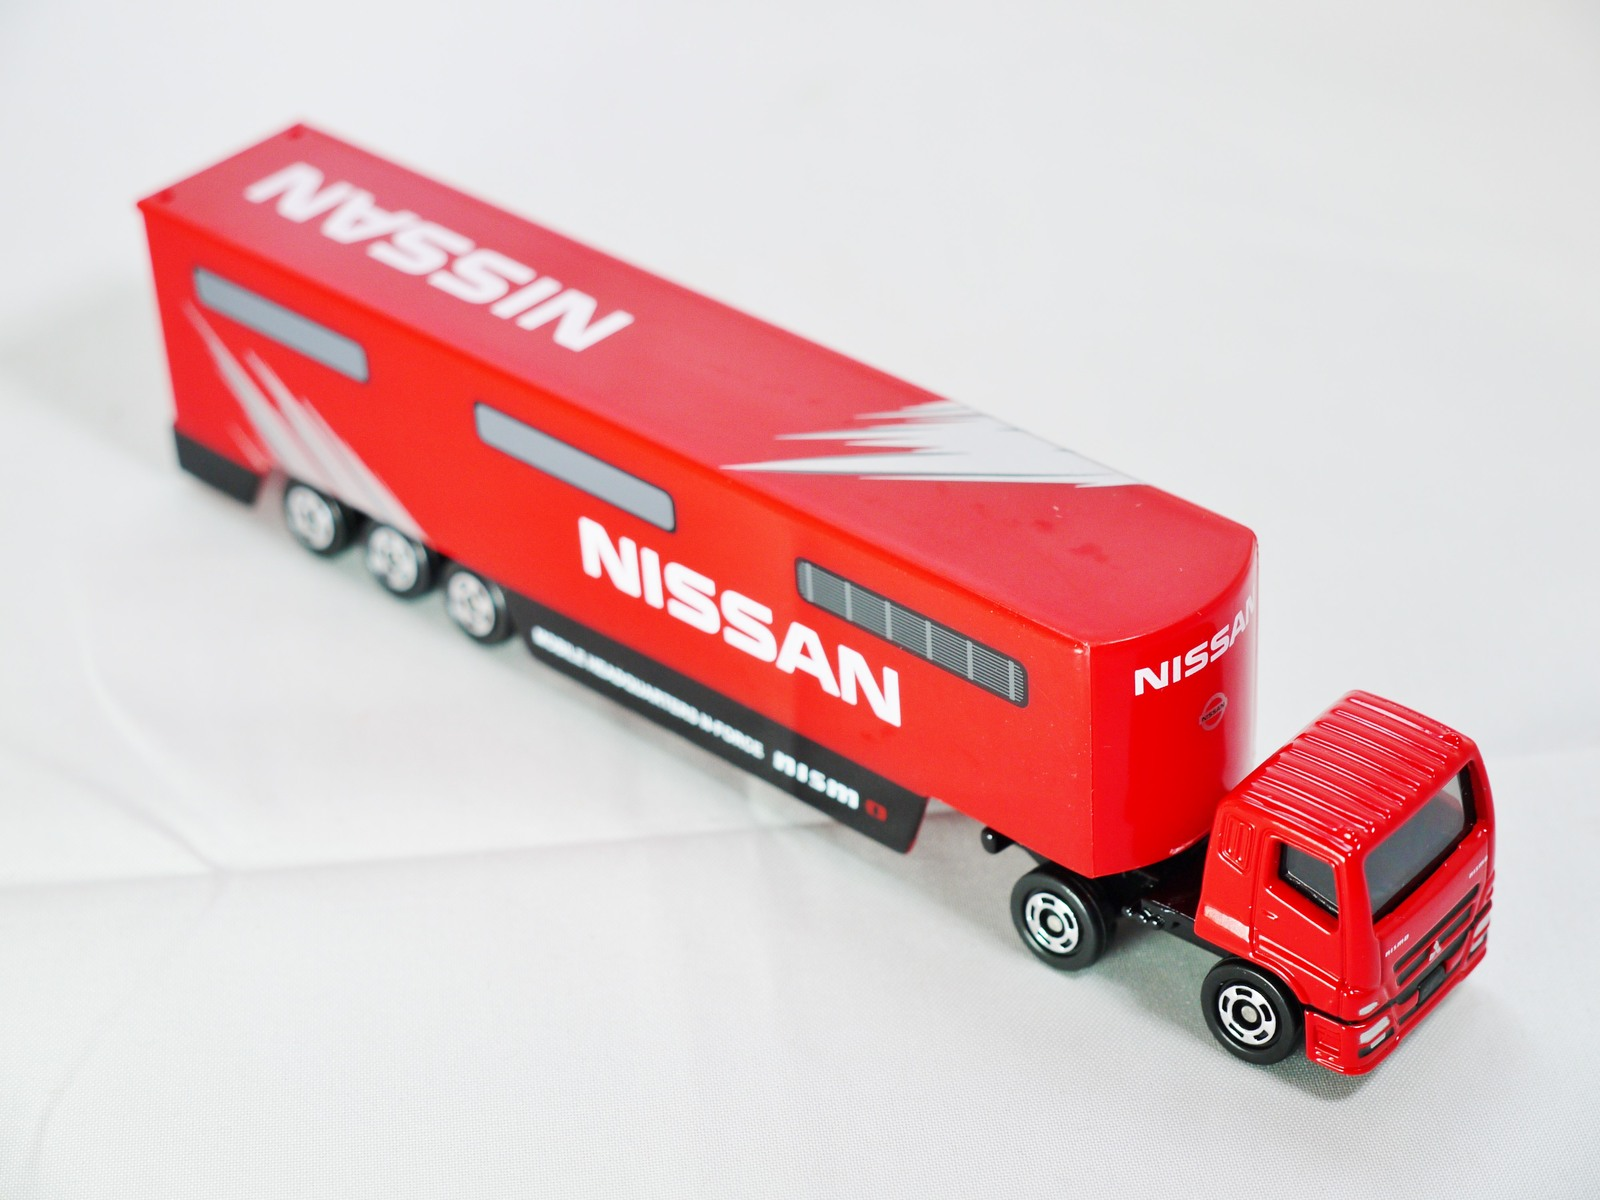 Diecast Truck Tomica No77 Hino Profia Original Takara Tomy Toys Rus Exclusive Nissan And 50 Similar Items Toysrus Nismo Mobile Headquarters N Force